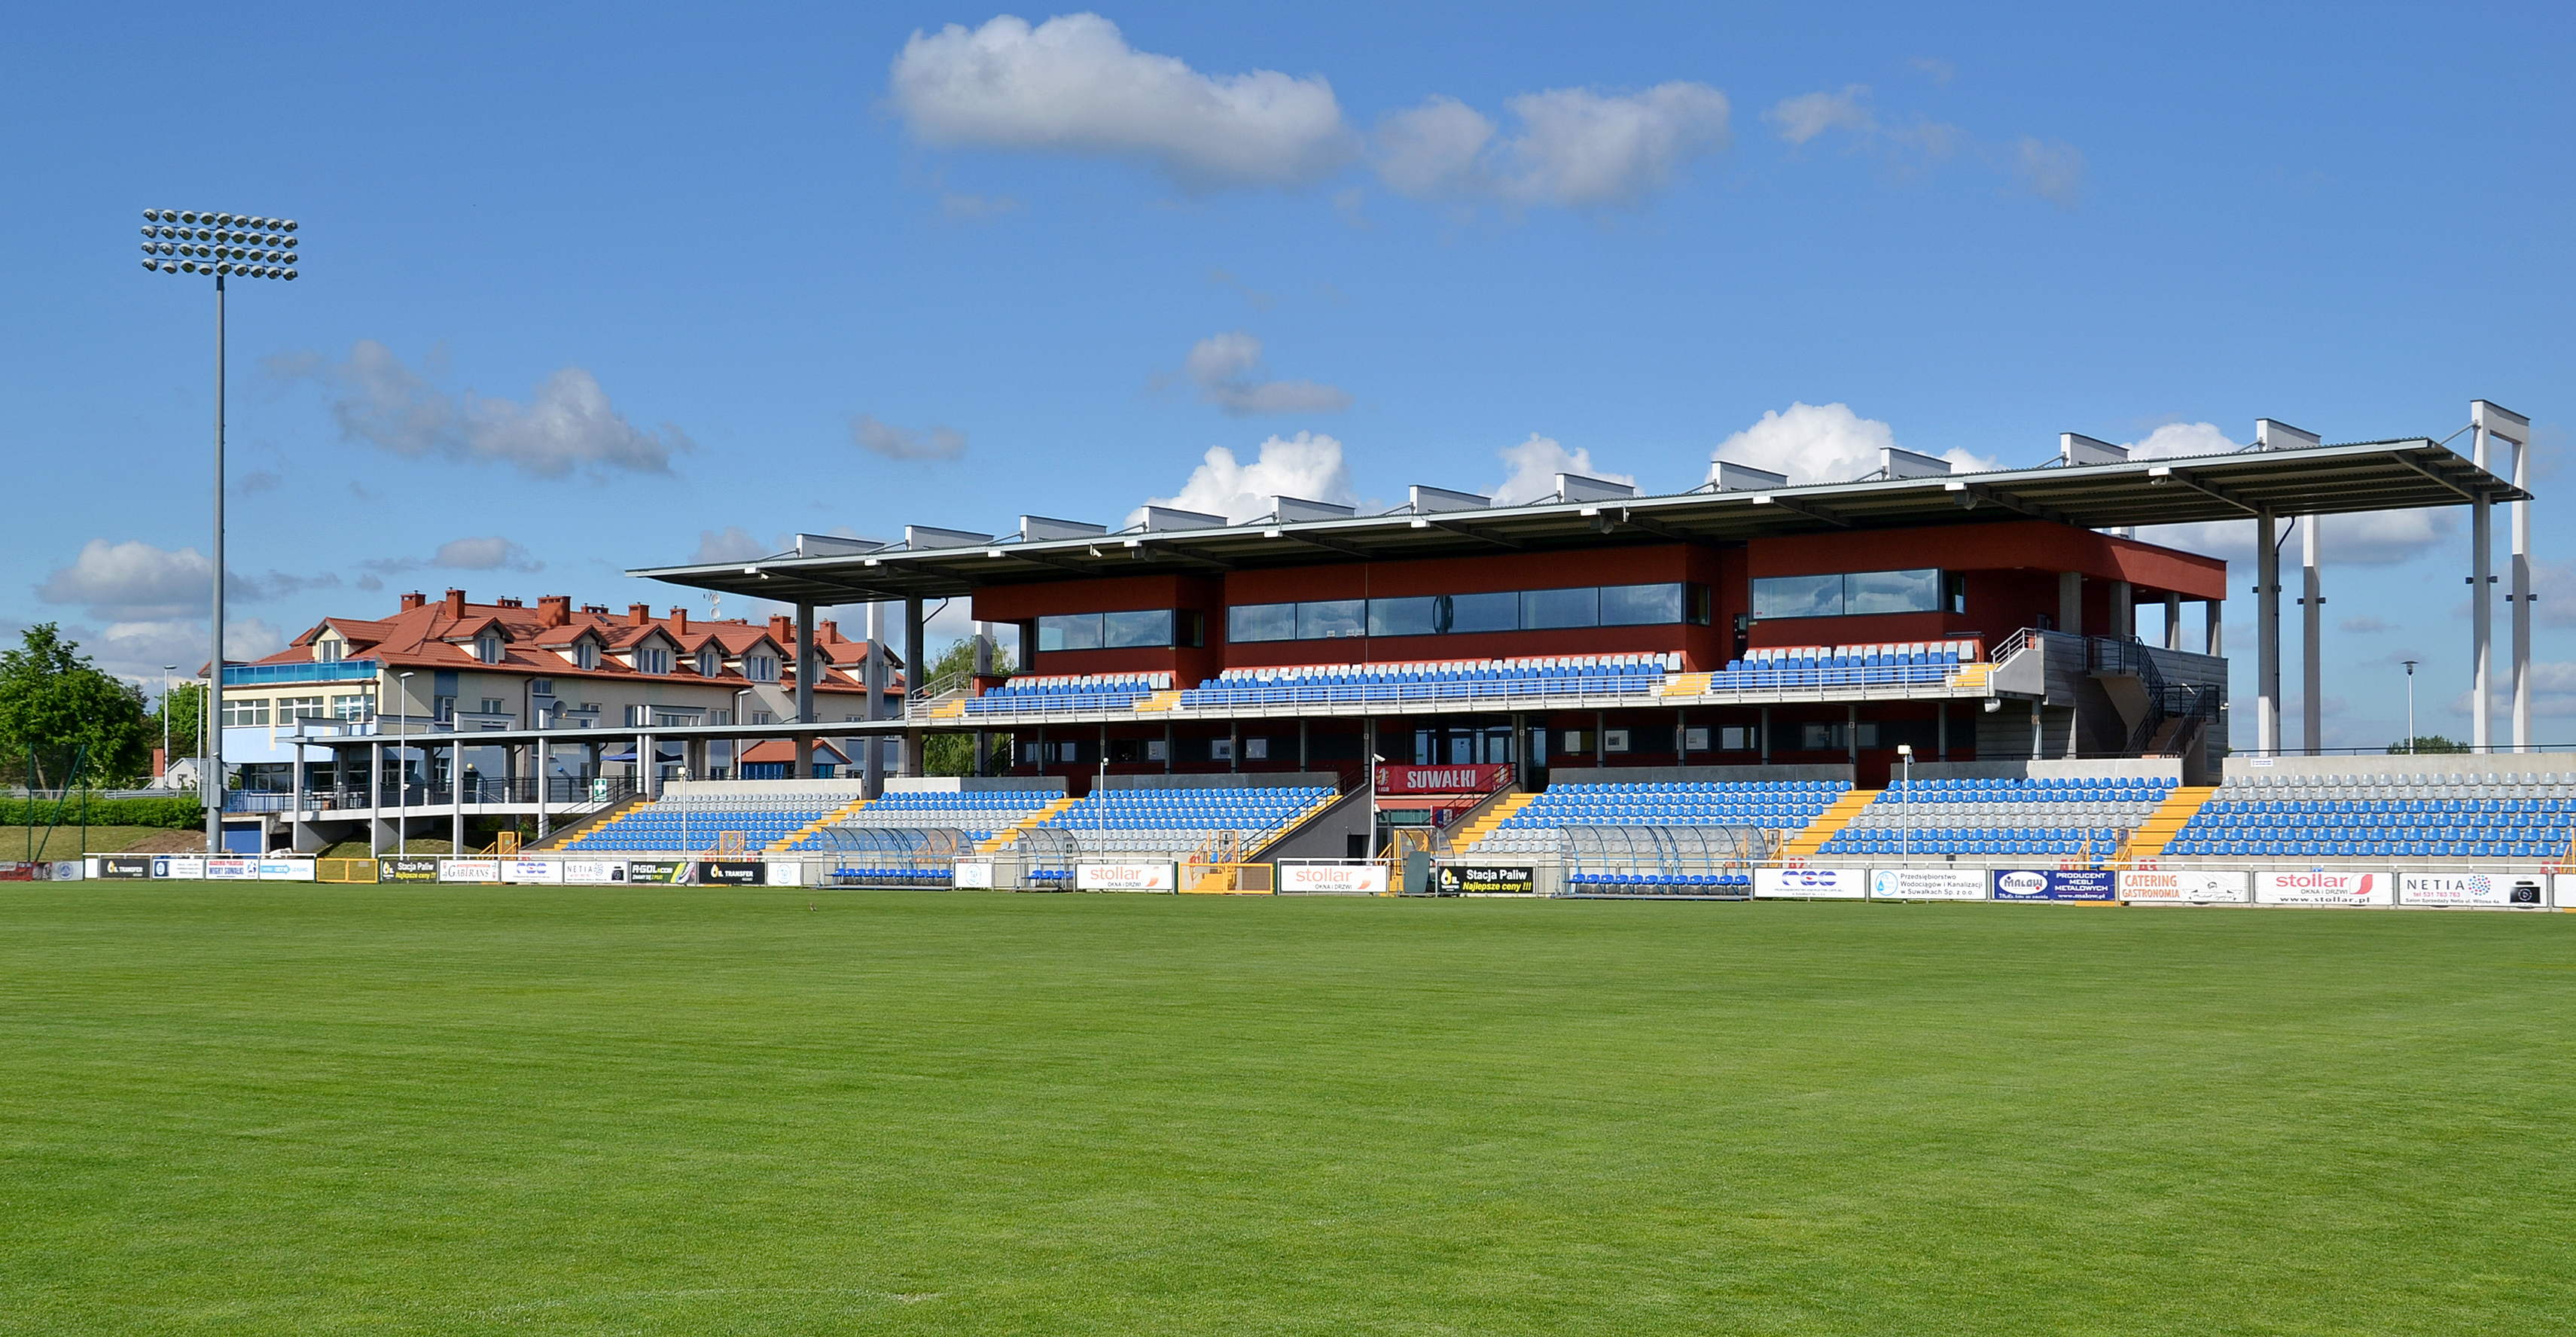 Municipal Stadium, Suwałki (by Pudelek) 01